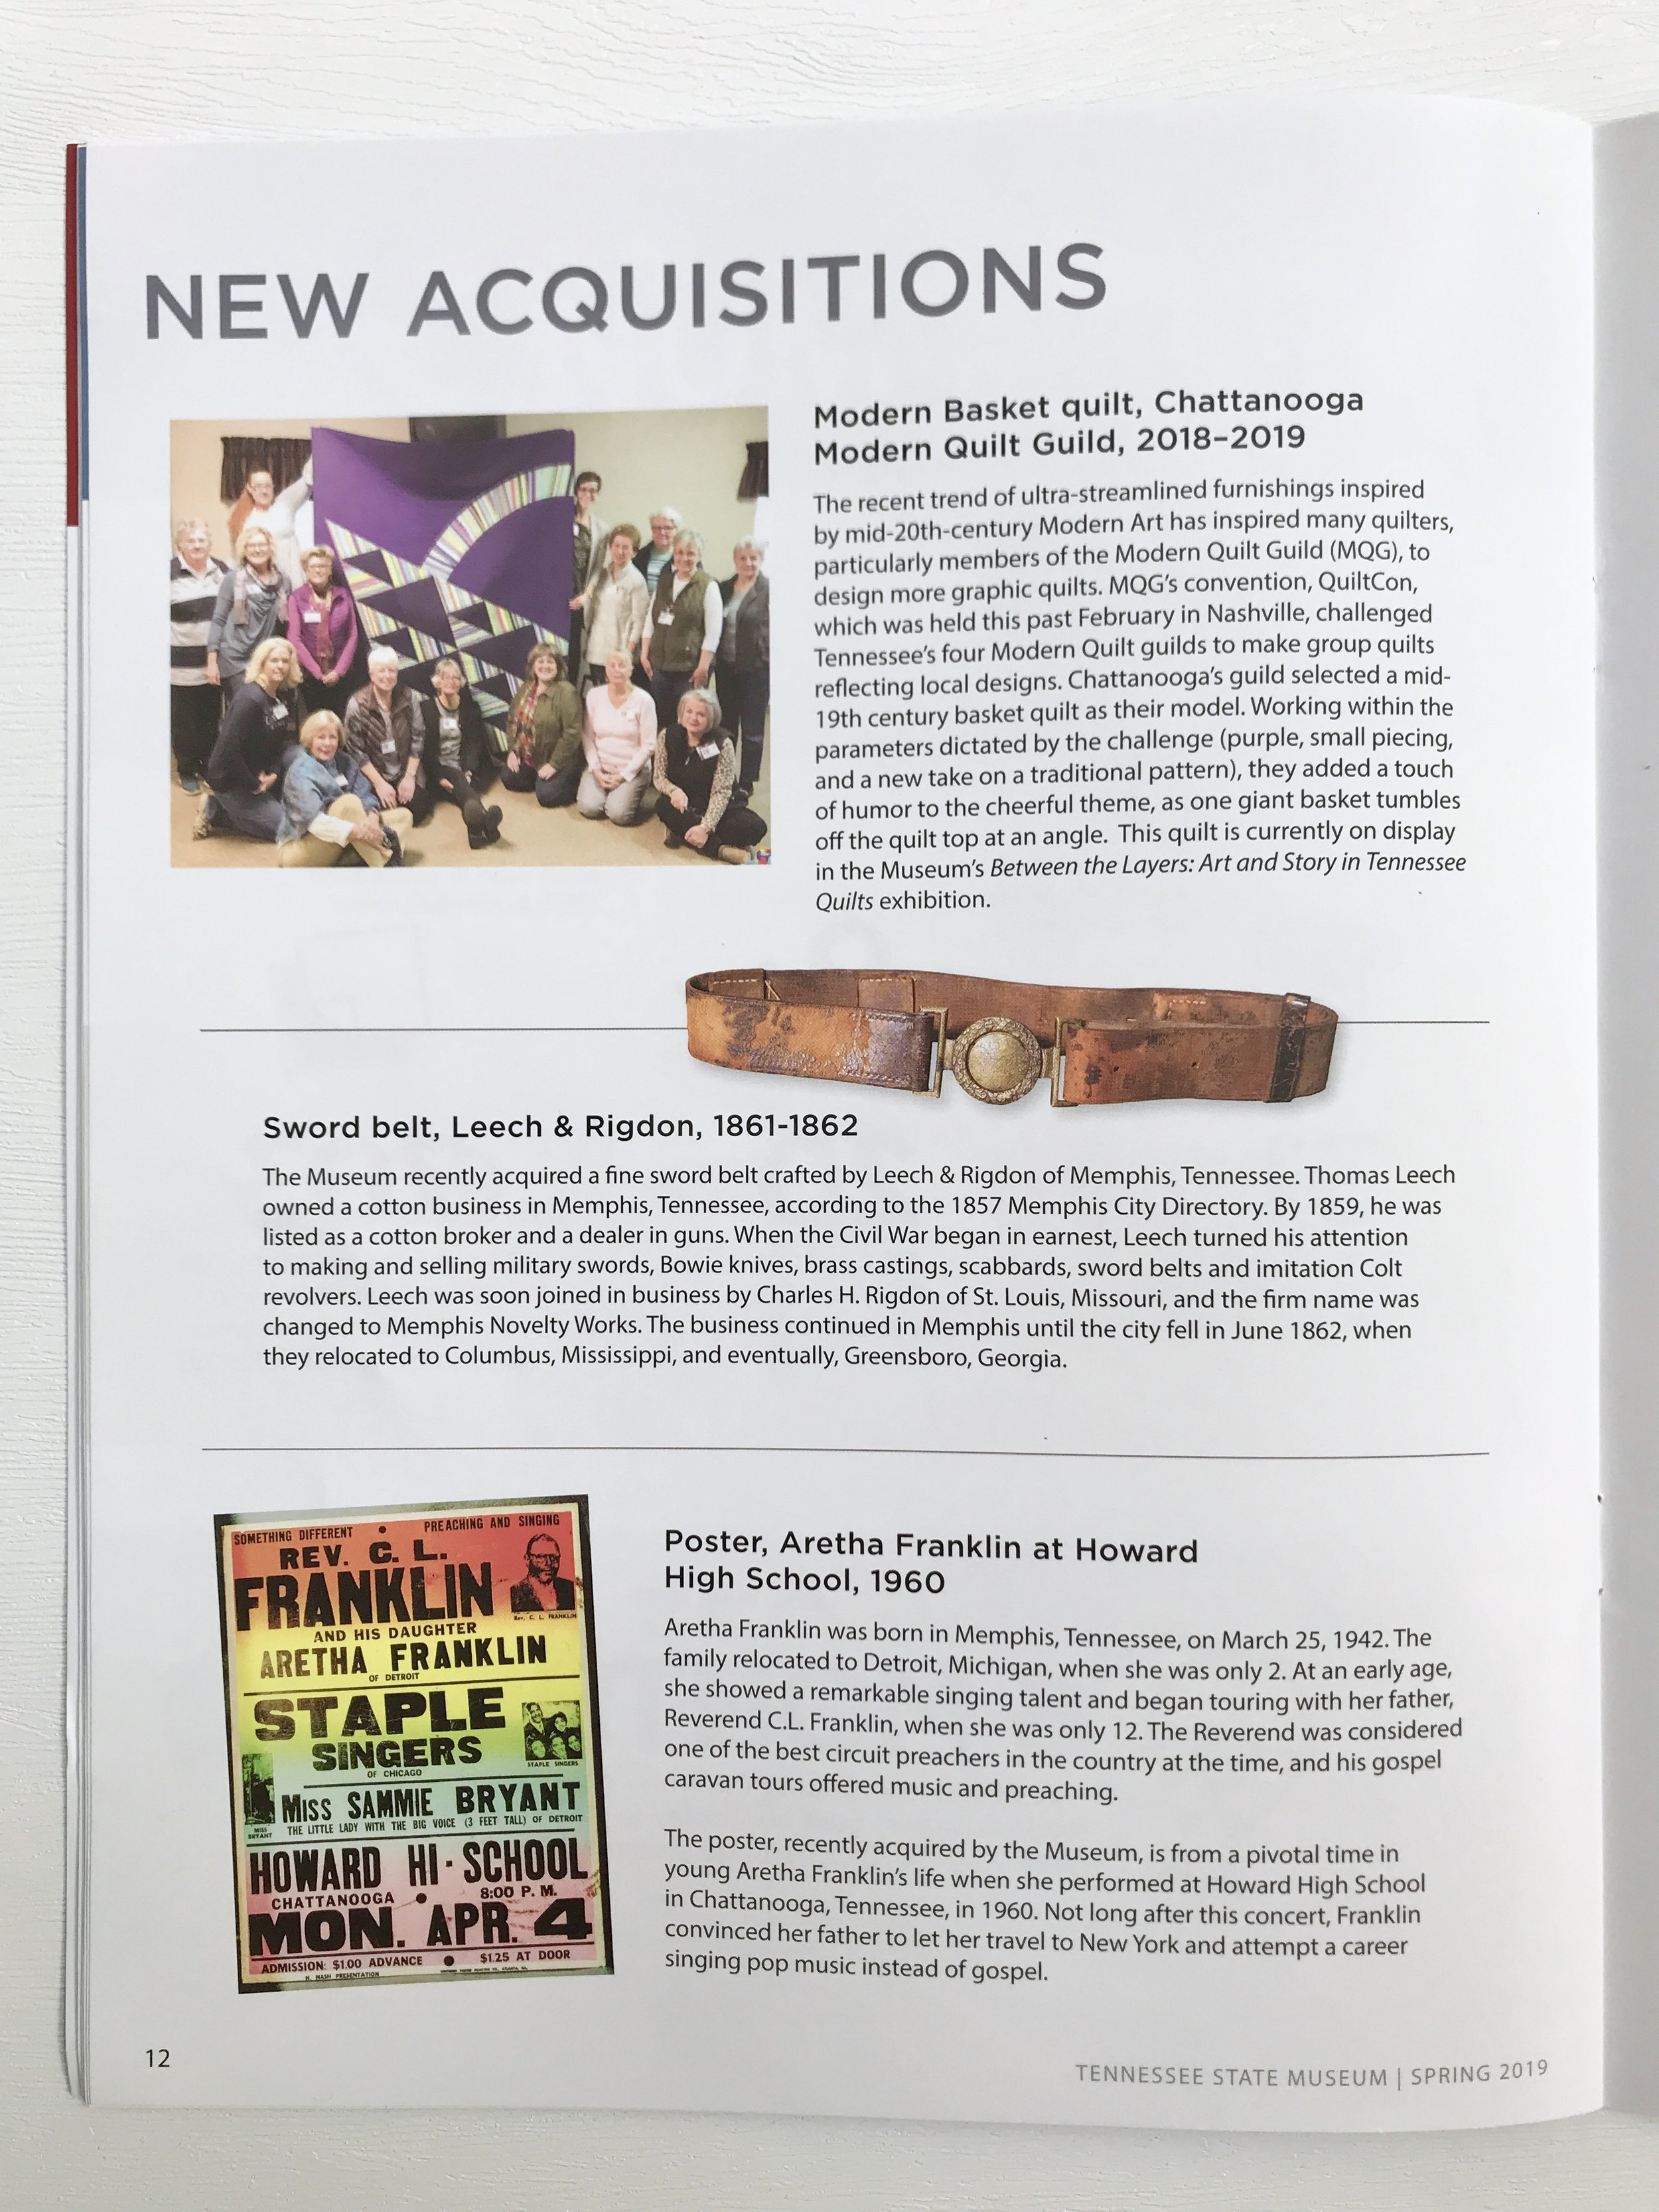 The Tennessee State Museum Spring 2019 newsletter features a writeup on the acquisition of our modern basket quilt.